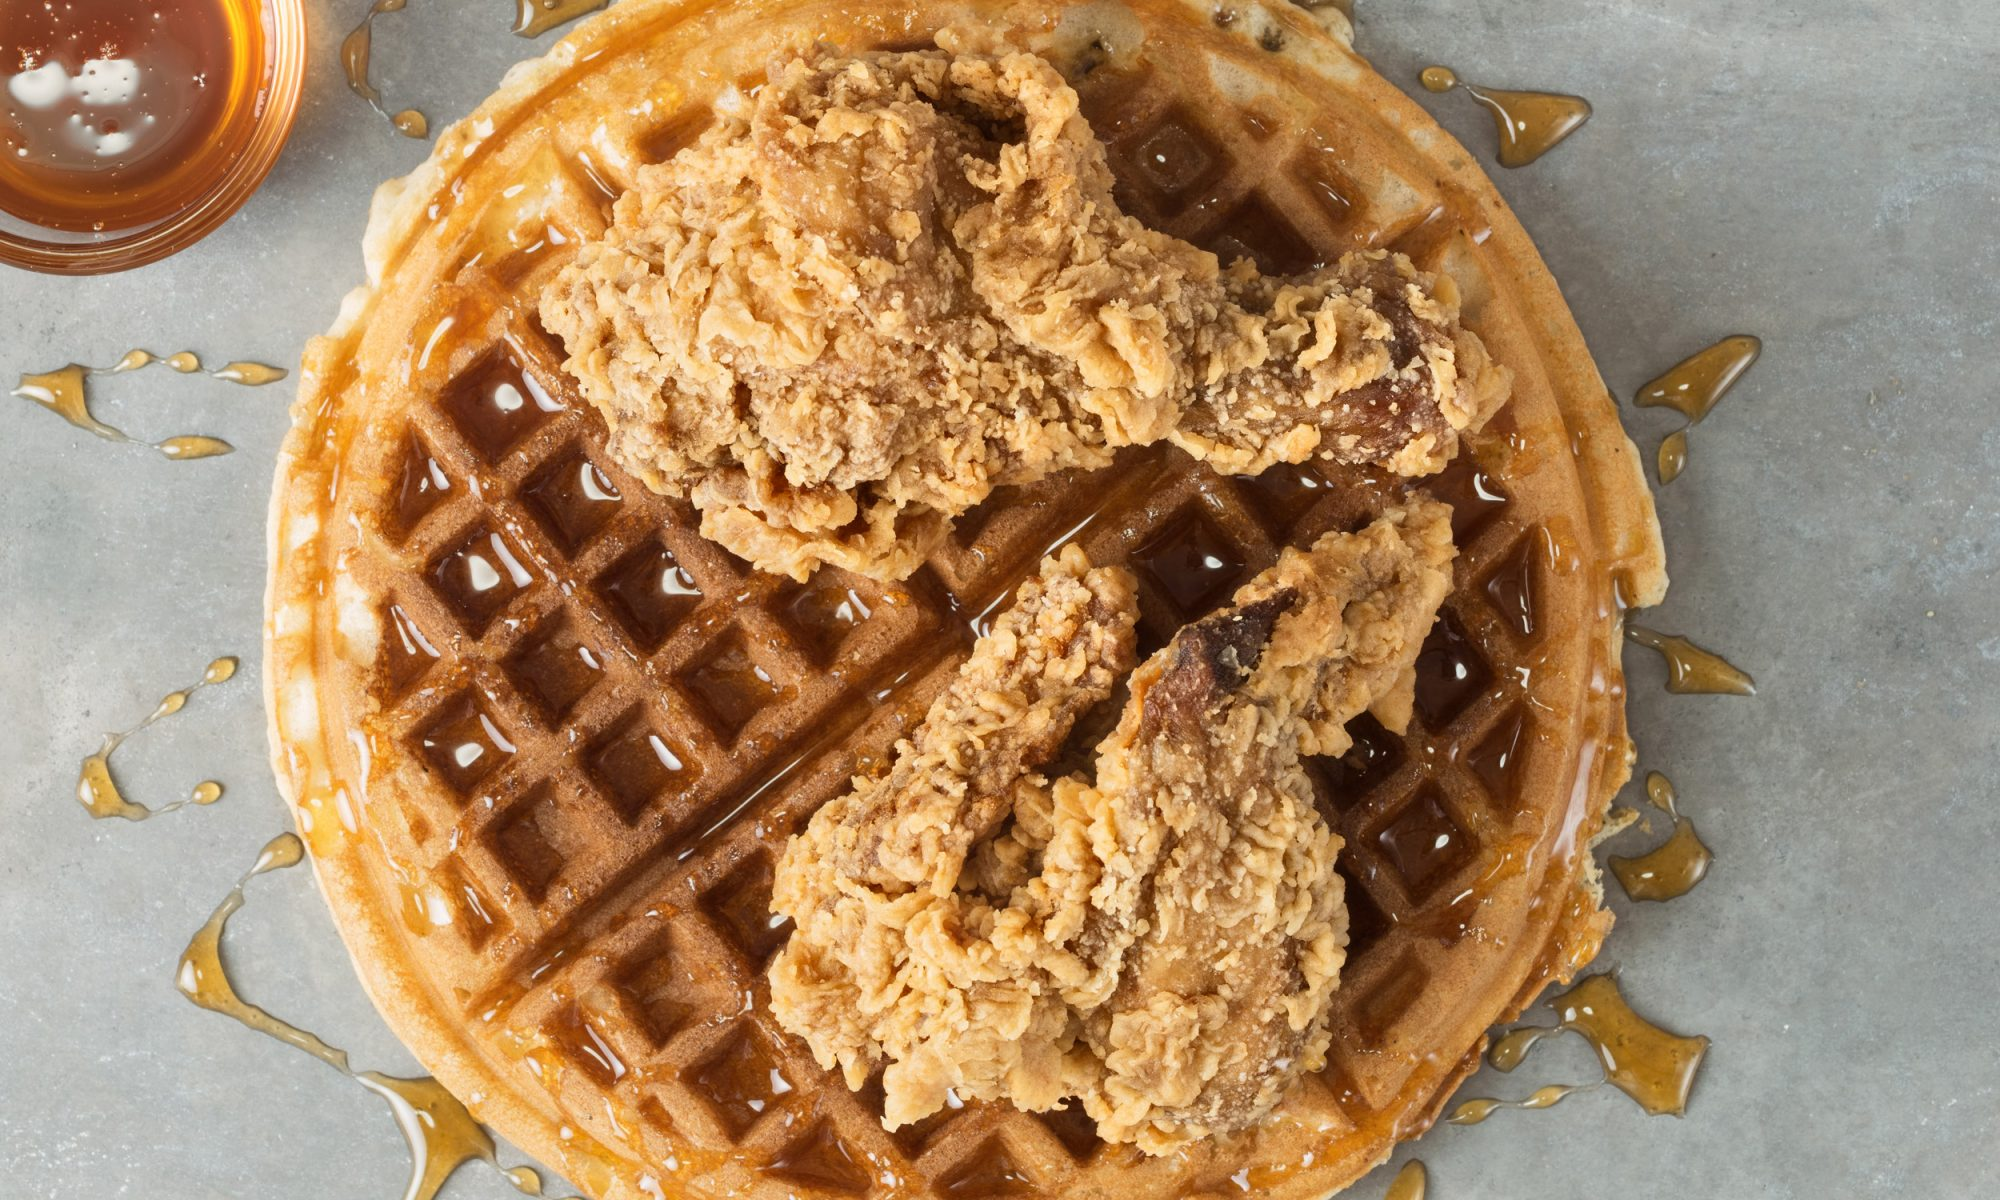 Chicken and Waffles Was Invented in the South, Despite What